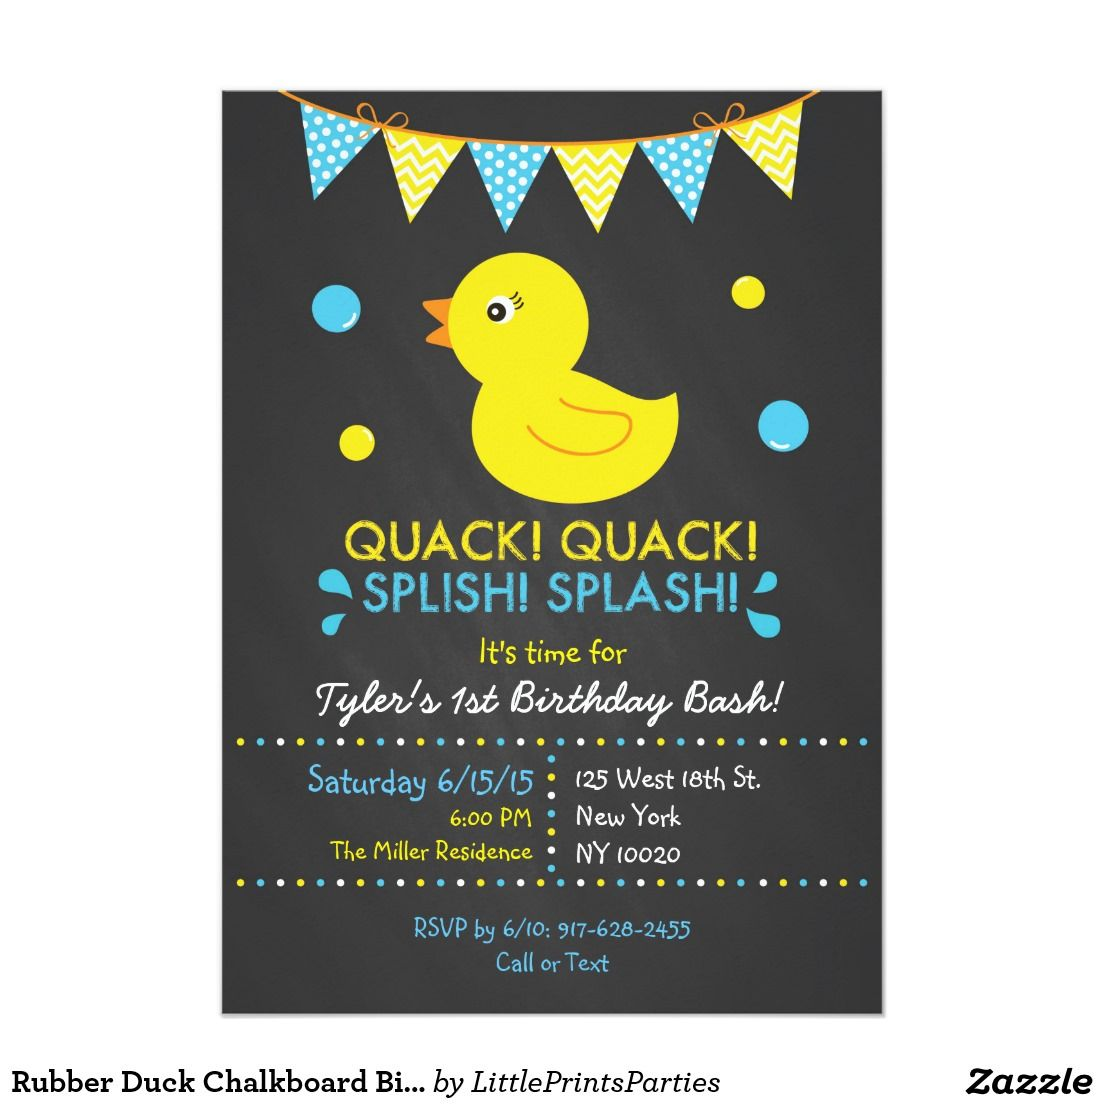 Rubber Duck Chalkboard 1st Birthday Invitation Zazzle Com Chalkboard Invitation Birthday 1st Birthday Invitations Chalkboard Baby Shower Invitation